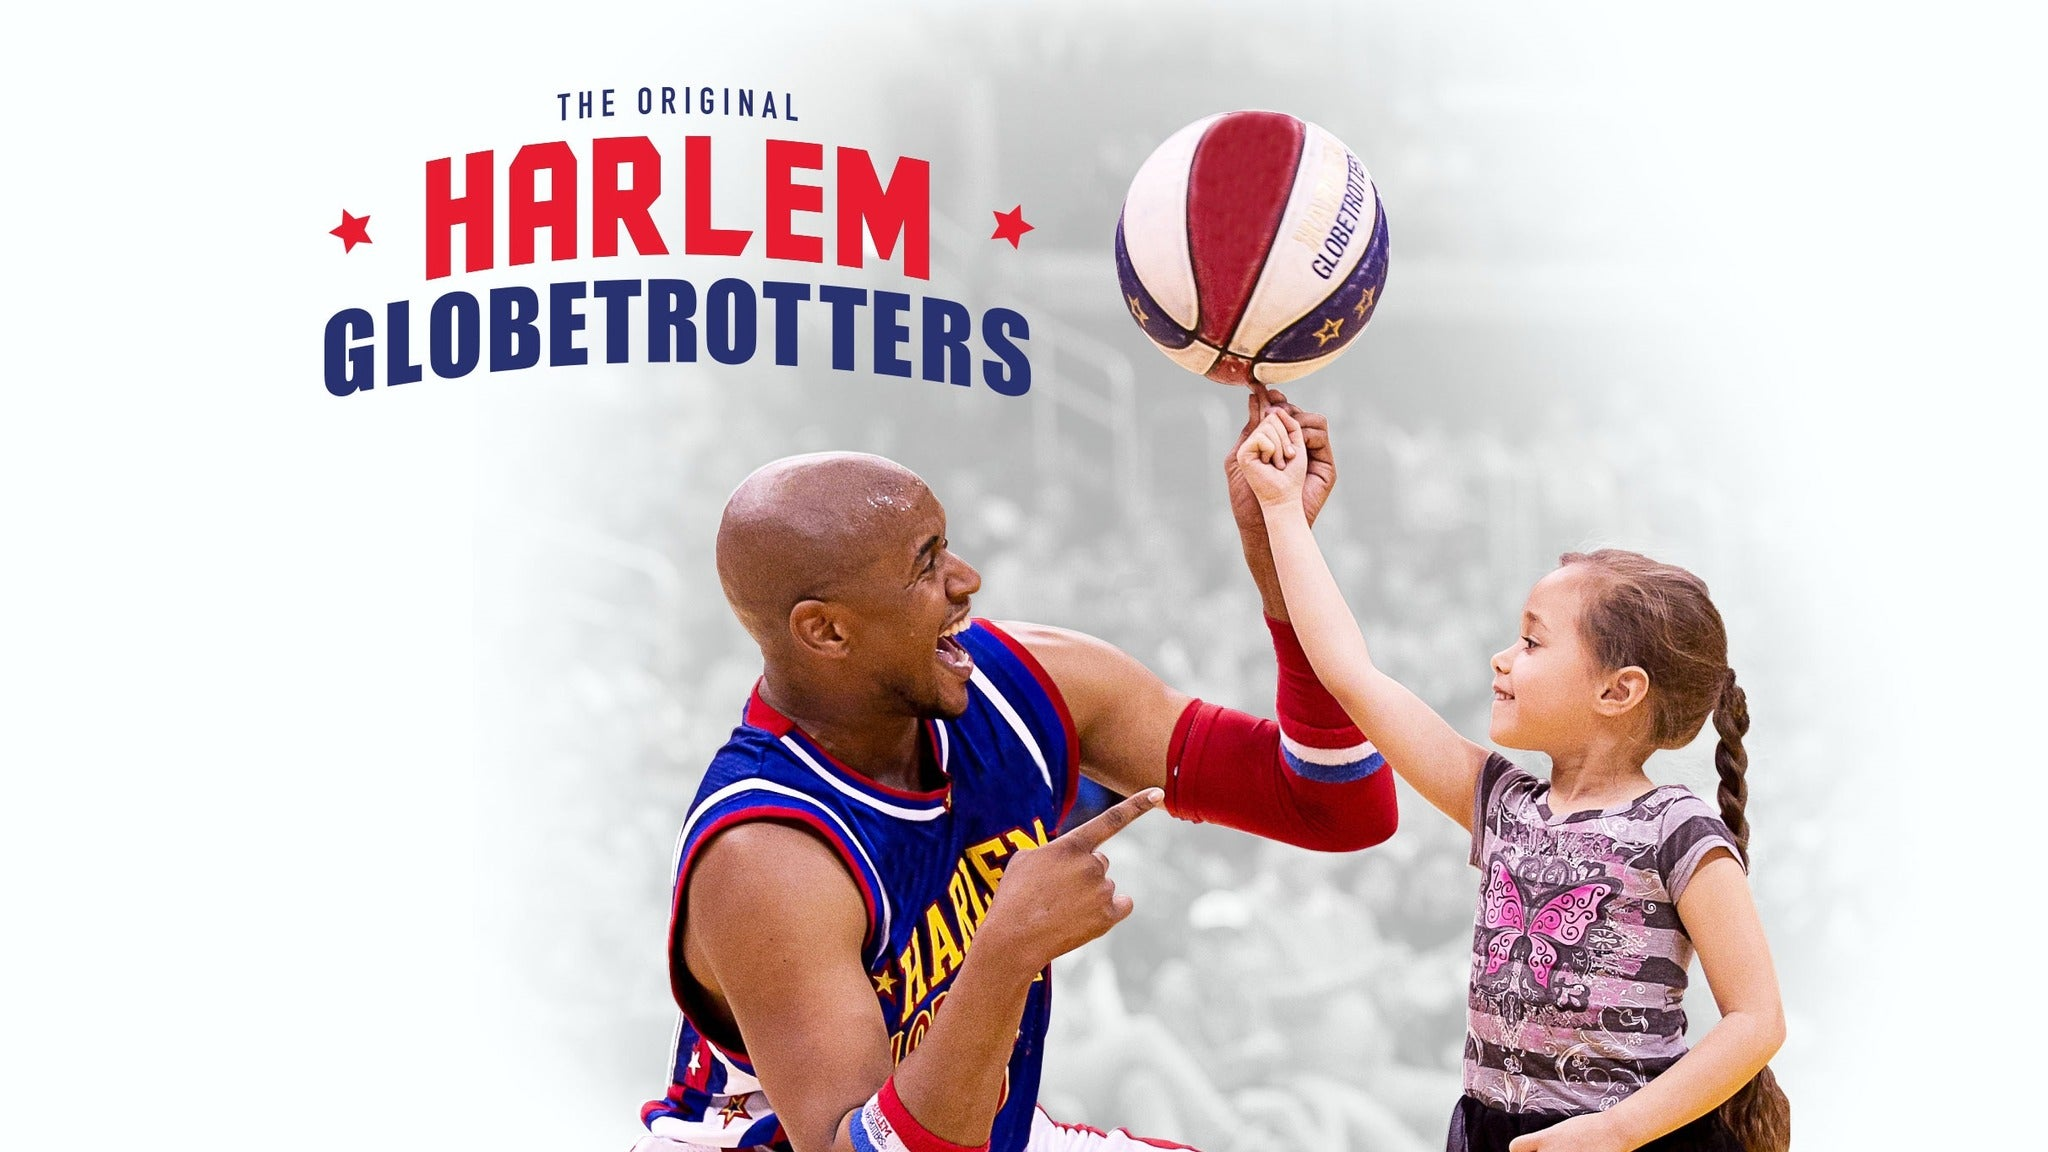 The Harlem Globetrotters | Daytona beach, FL | Ocean Center | December 9, 2017